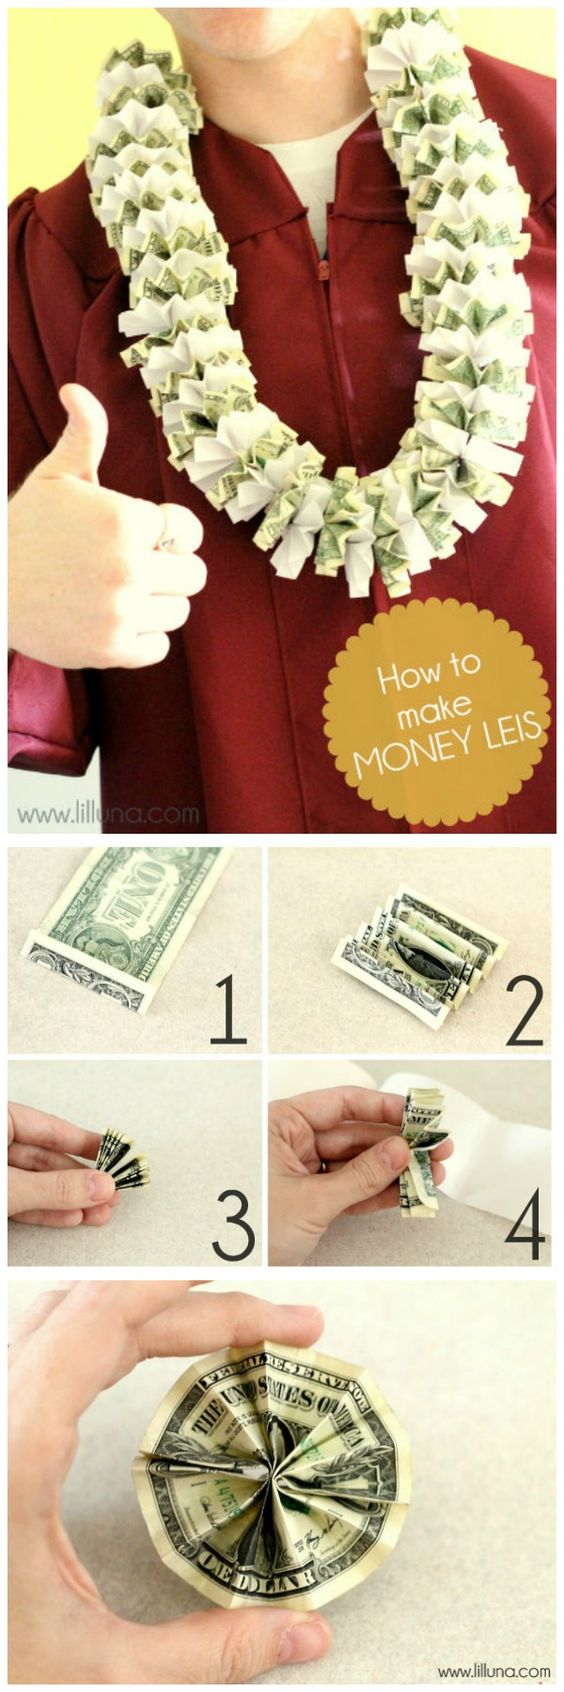 Money lei, Best Graduation gift ideas, fun and easy DIY graduation grad gifts, thoughtful graduation gift, money origami graduation gifts, money gift cards graduation gift ideas